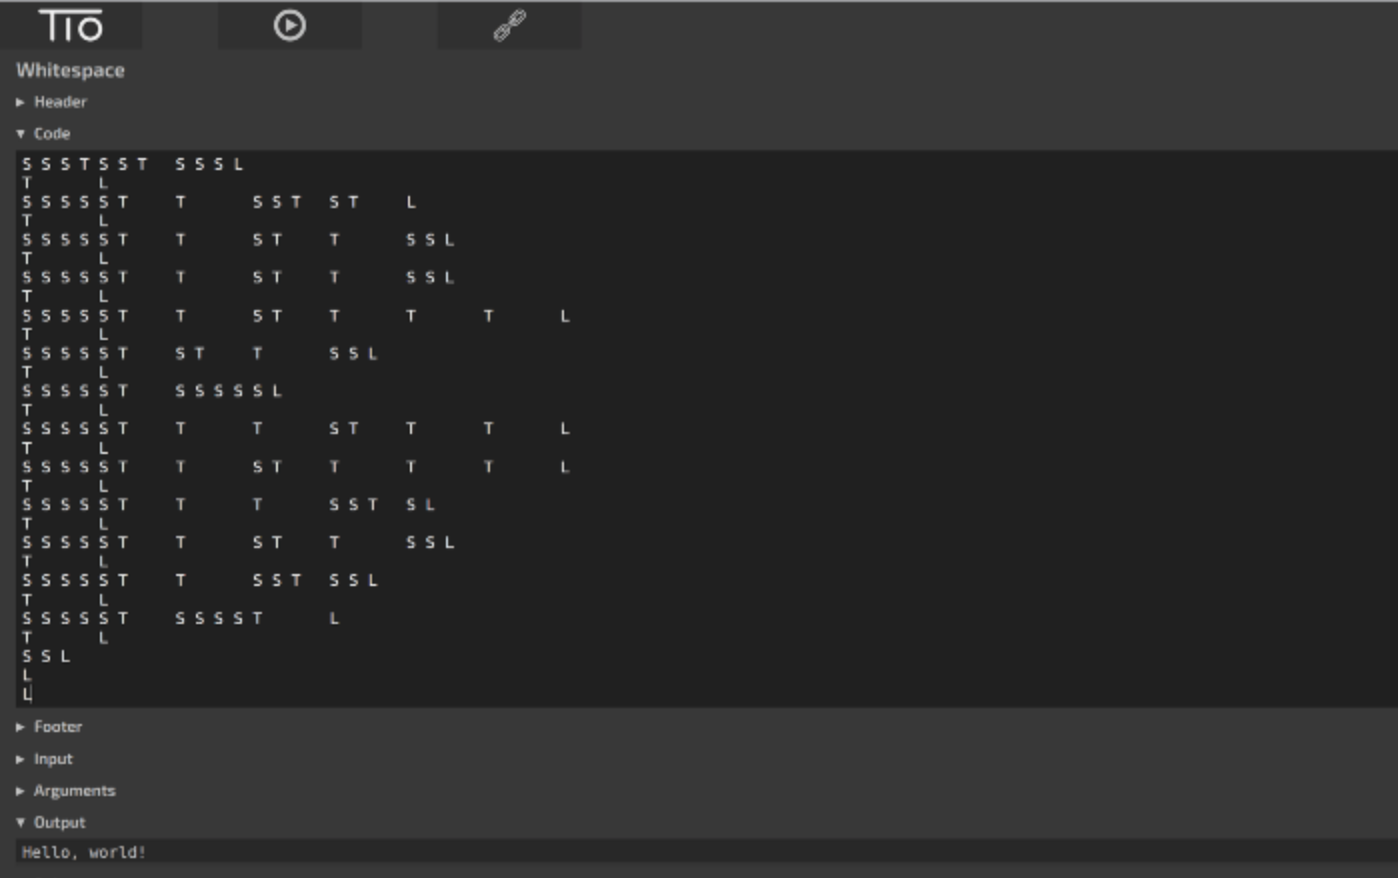 how to program in whitespace